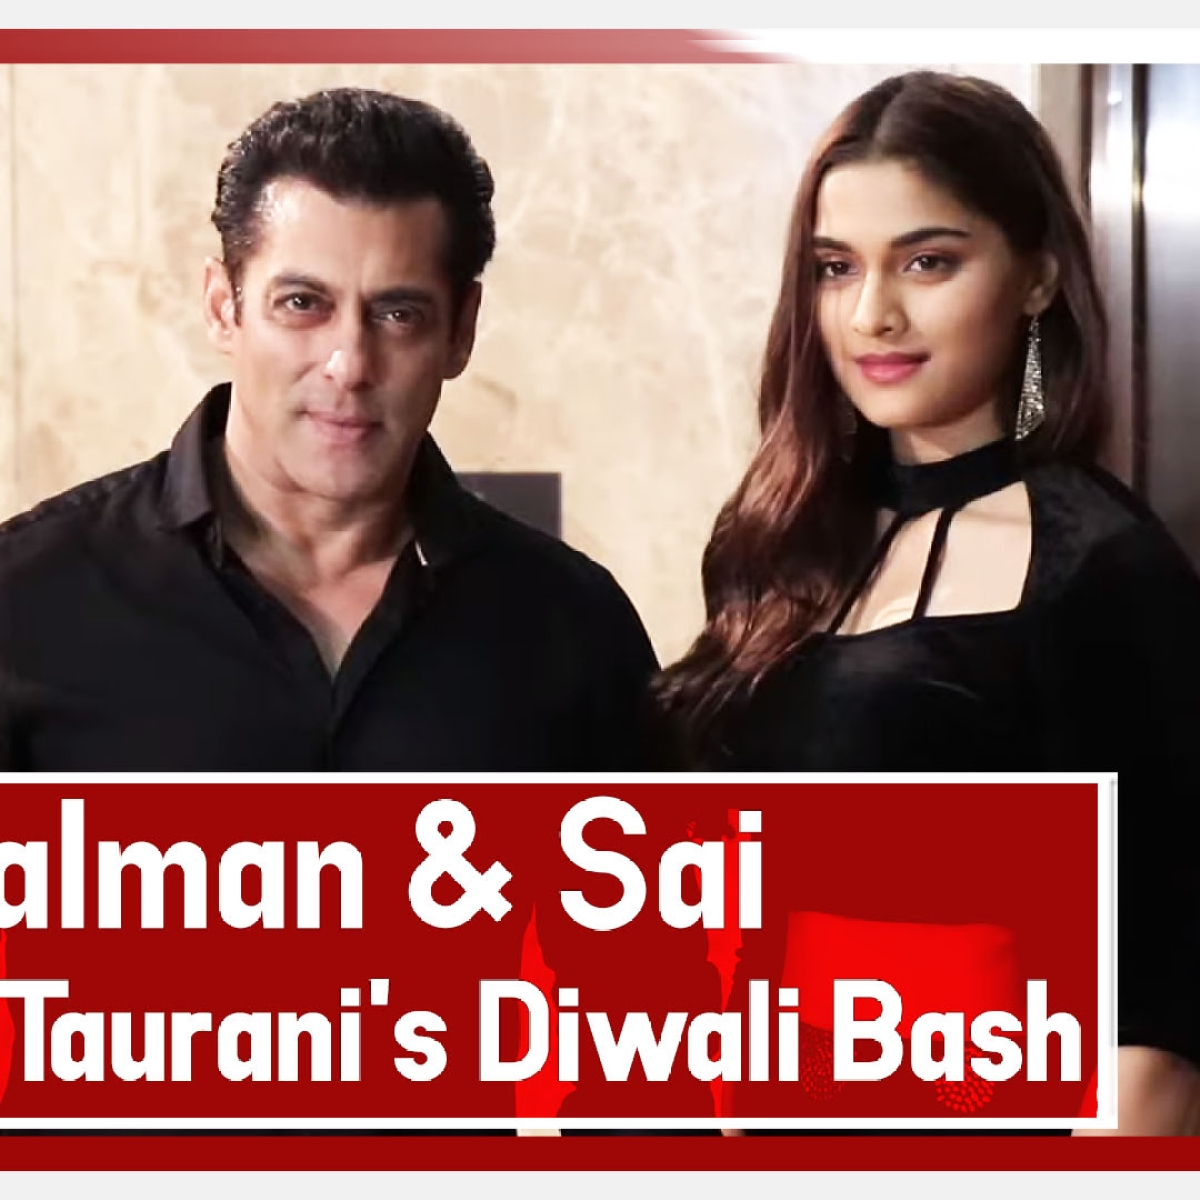 Dabangg 3: Salman Khan And Sai Manjrekar At Ramesh Taurani's Diwali Bash 2019